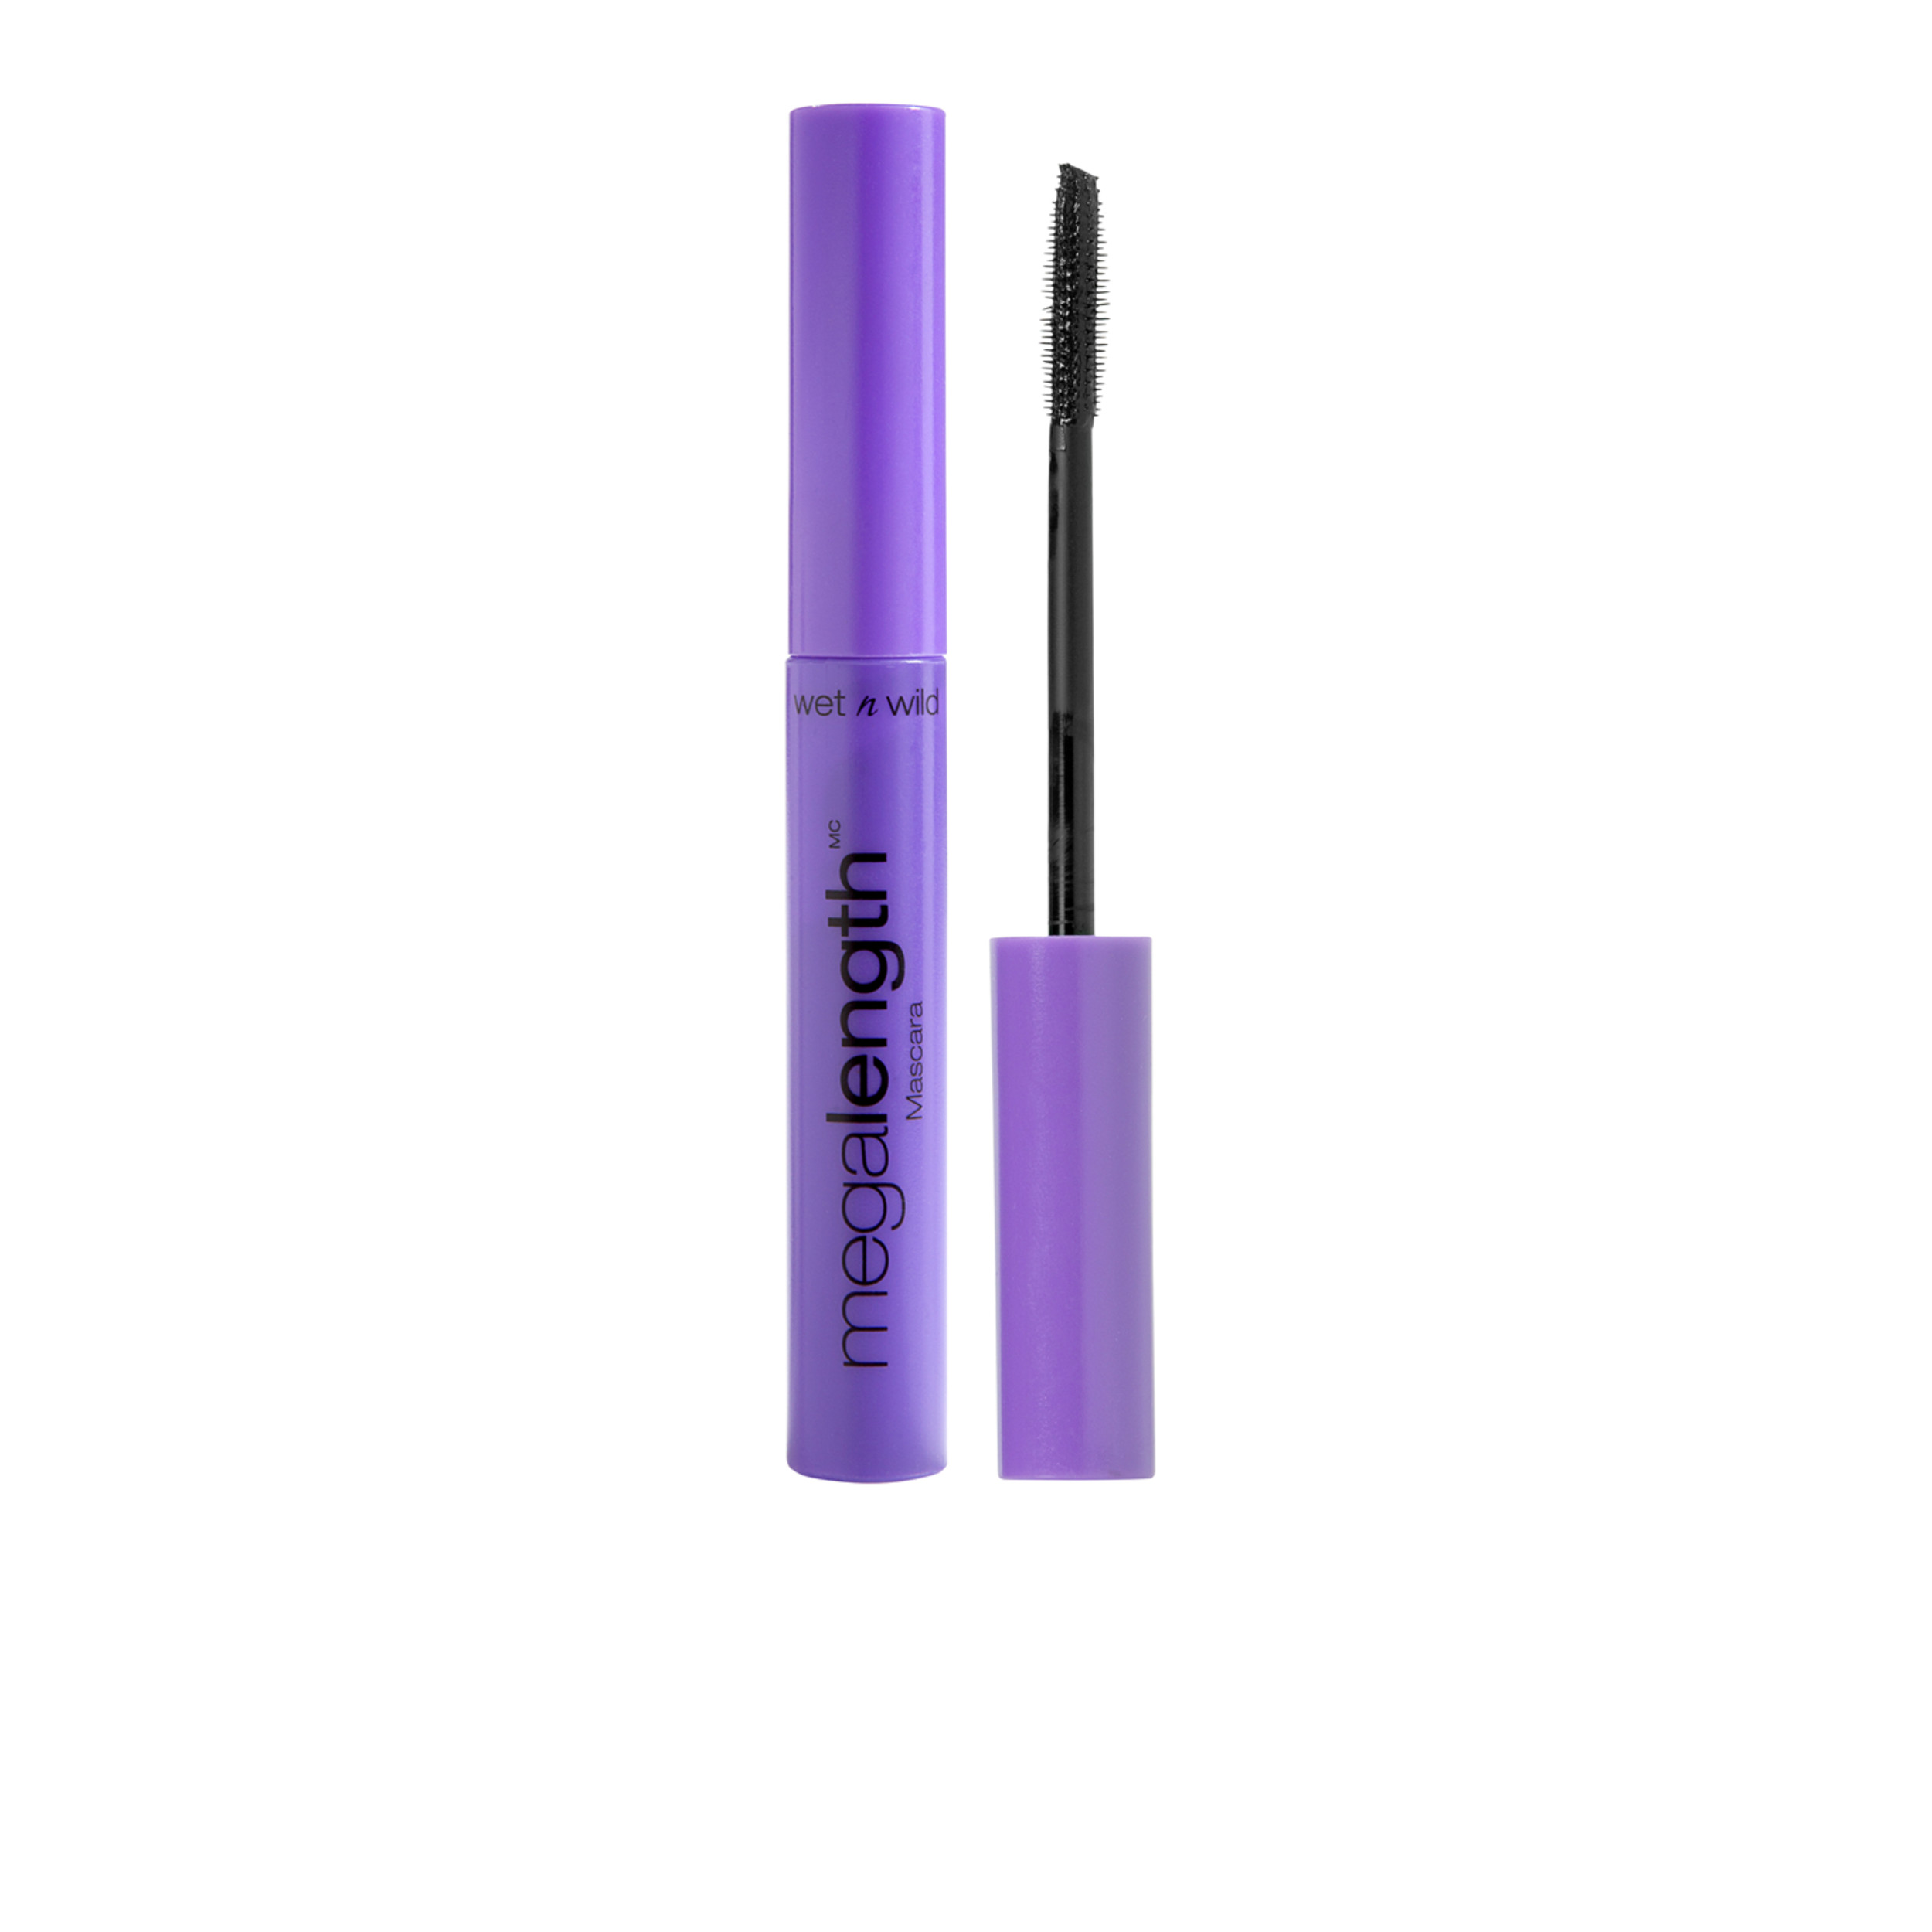 18cb6adacd6 wet n wild MegaLength Mascara, Very Black - Walmart.com